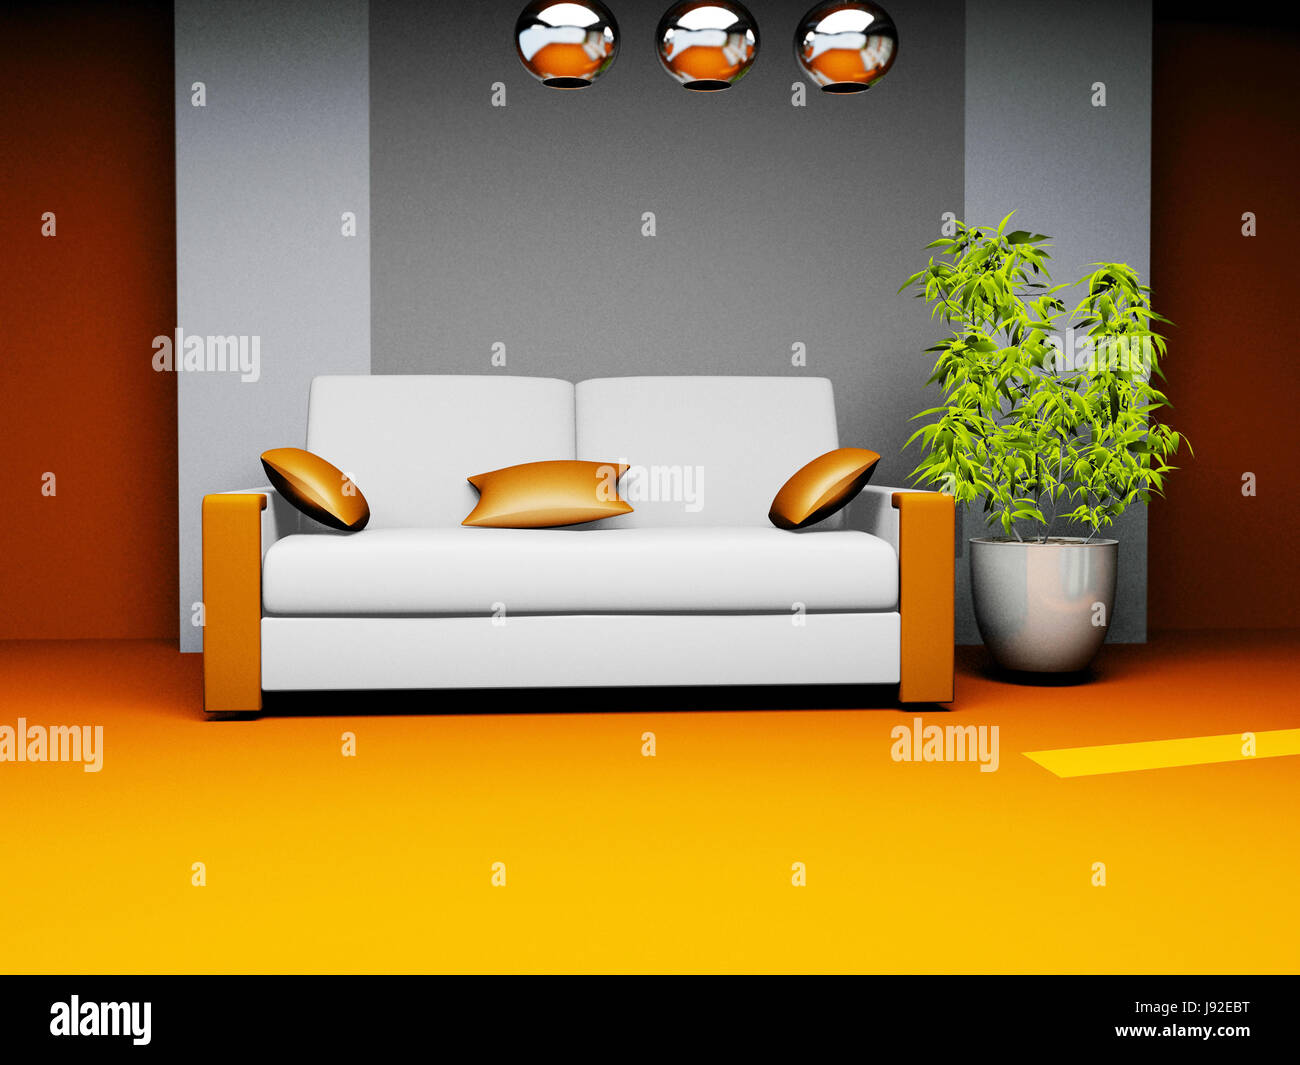 Office relaxation Real Estate Sale Wait Waiting Office Furniture Relaxation Space Modern Modernity Public Alamy Wait Waiting Office Furniture Relaxation Space Modern Stock